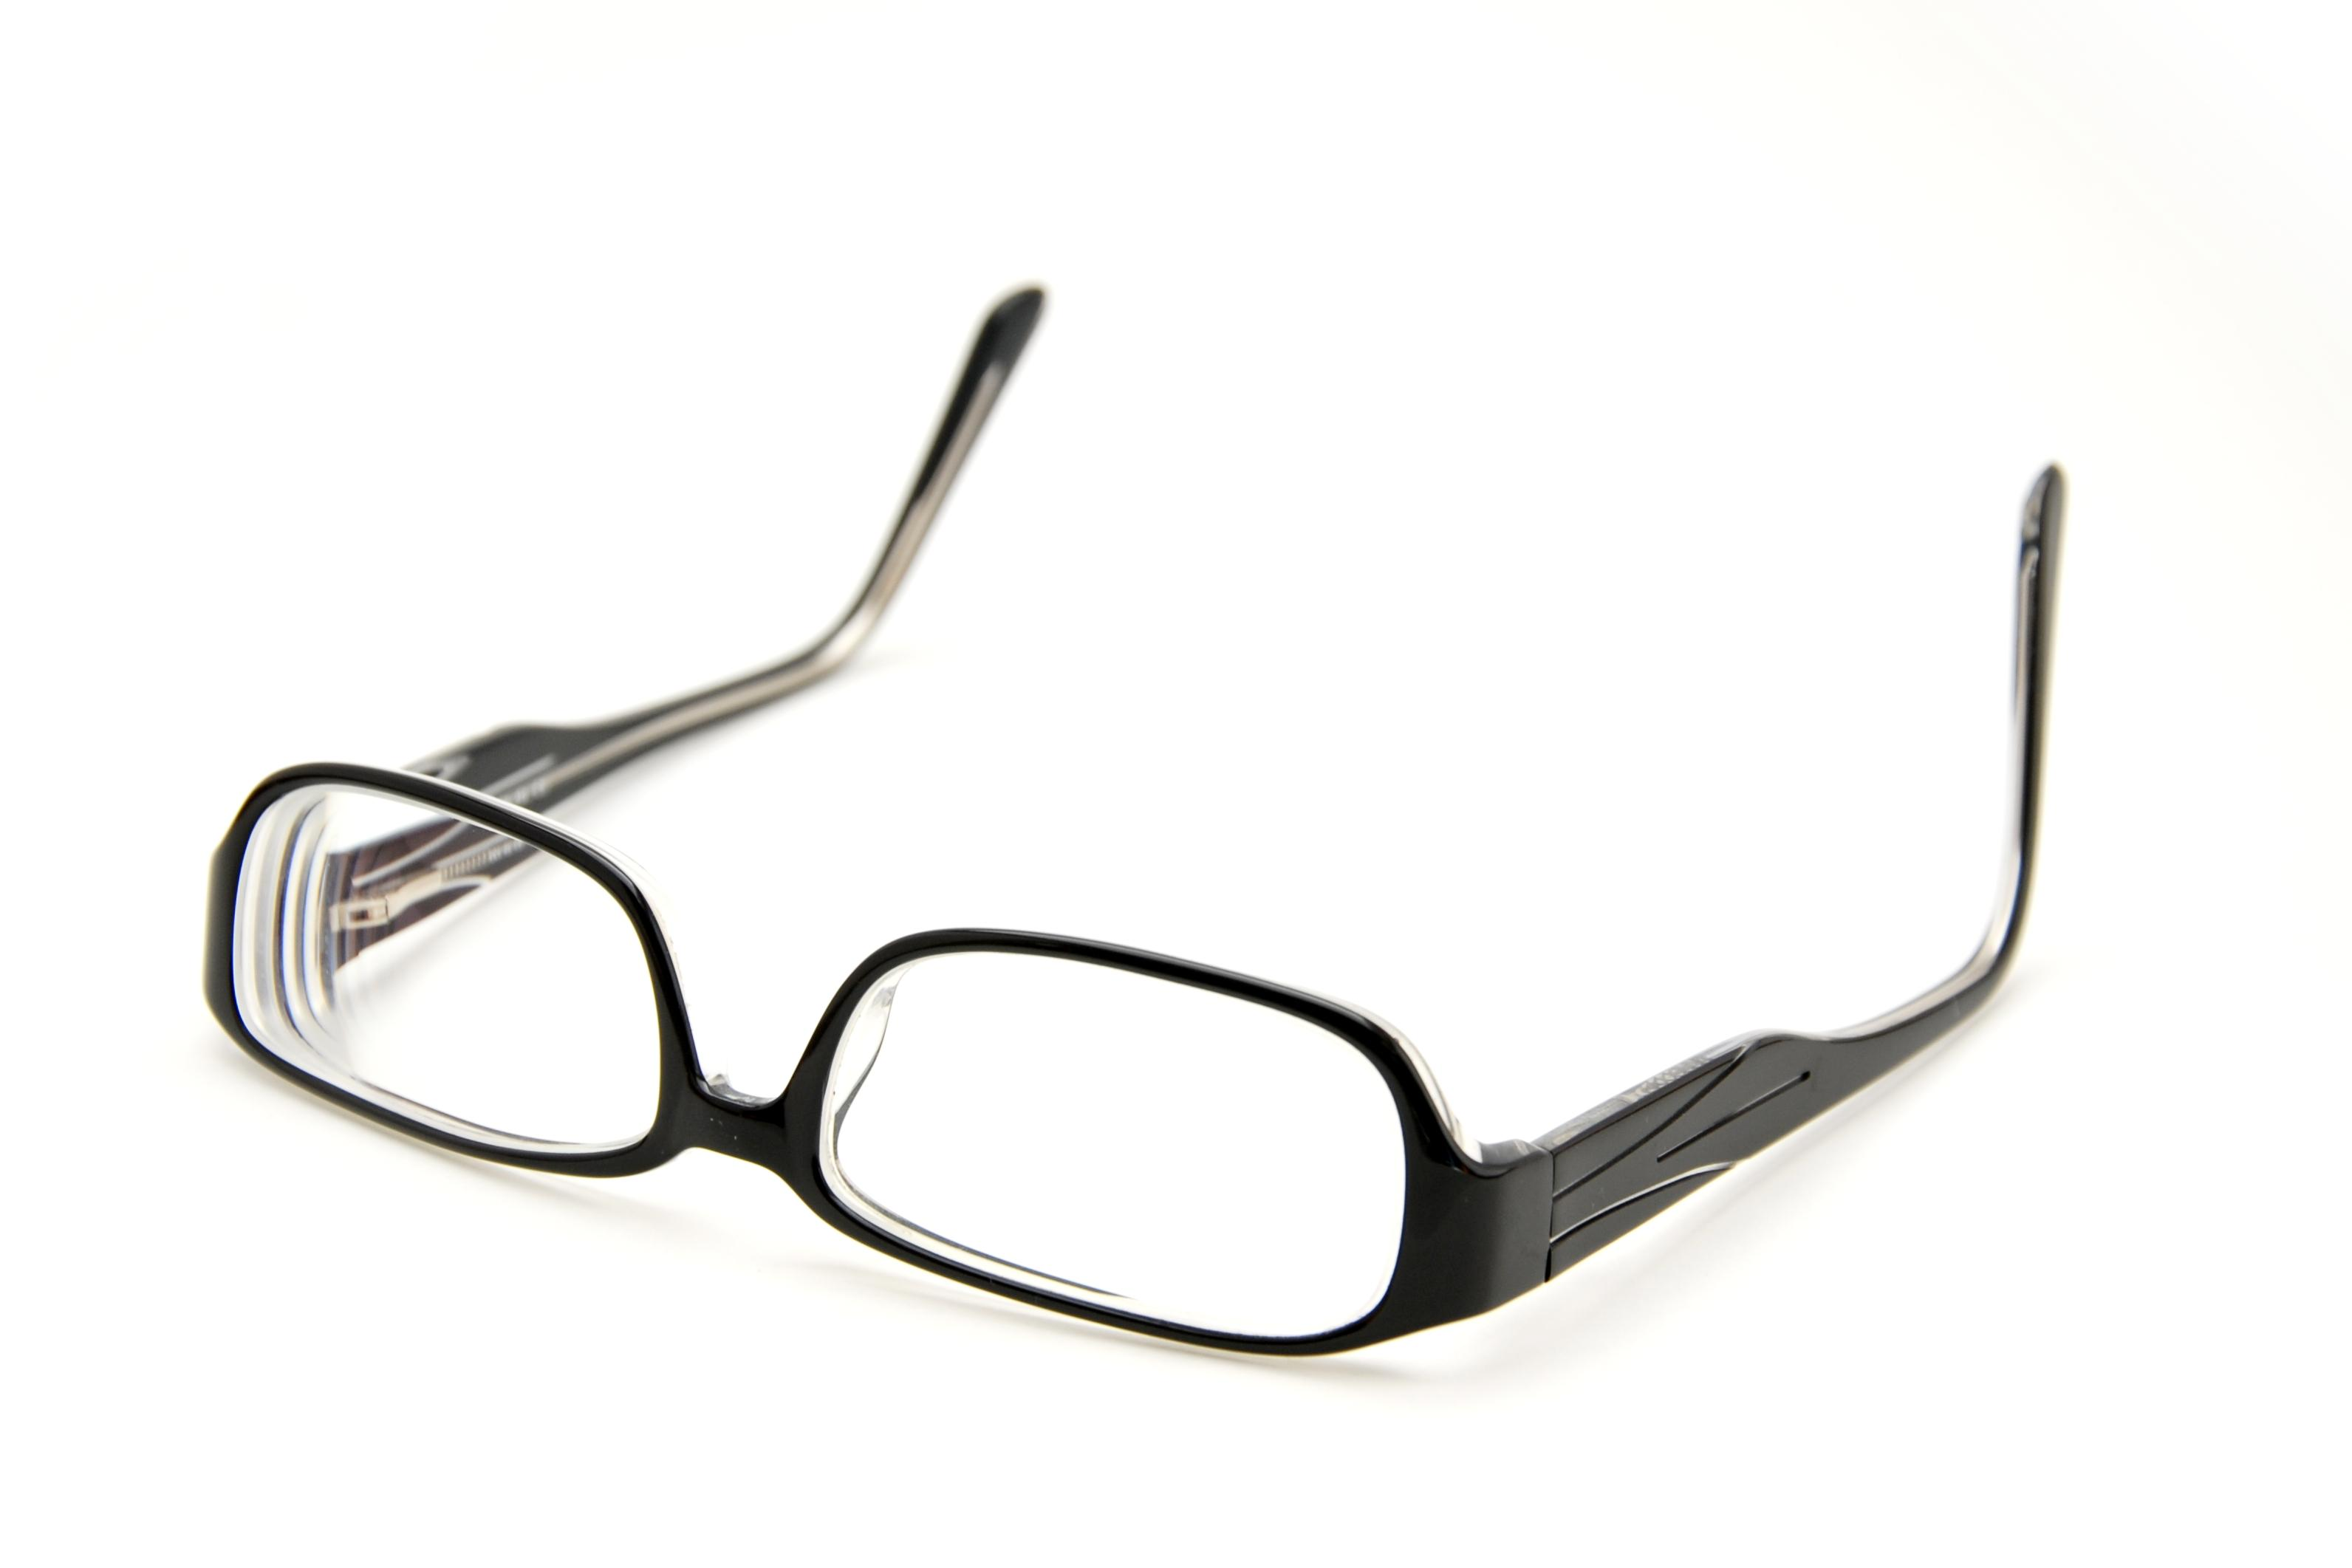 eyeglasses on white